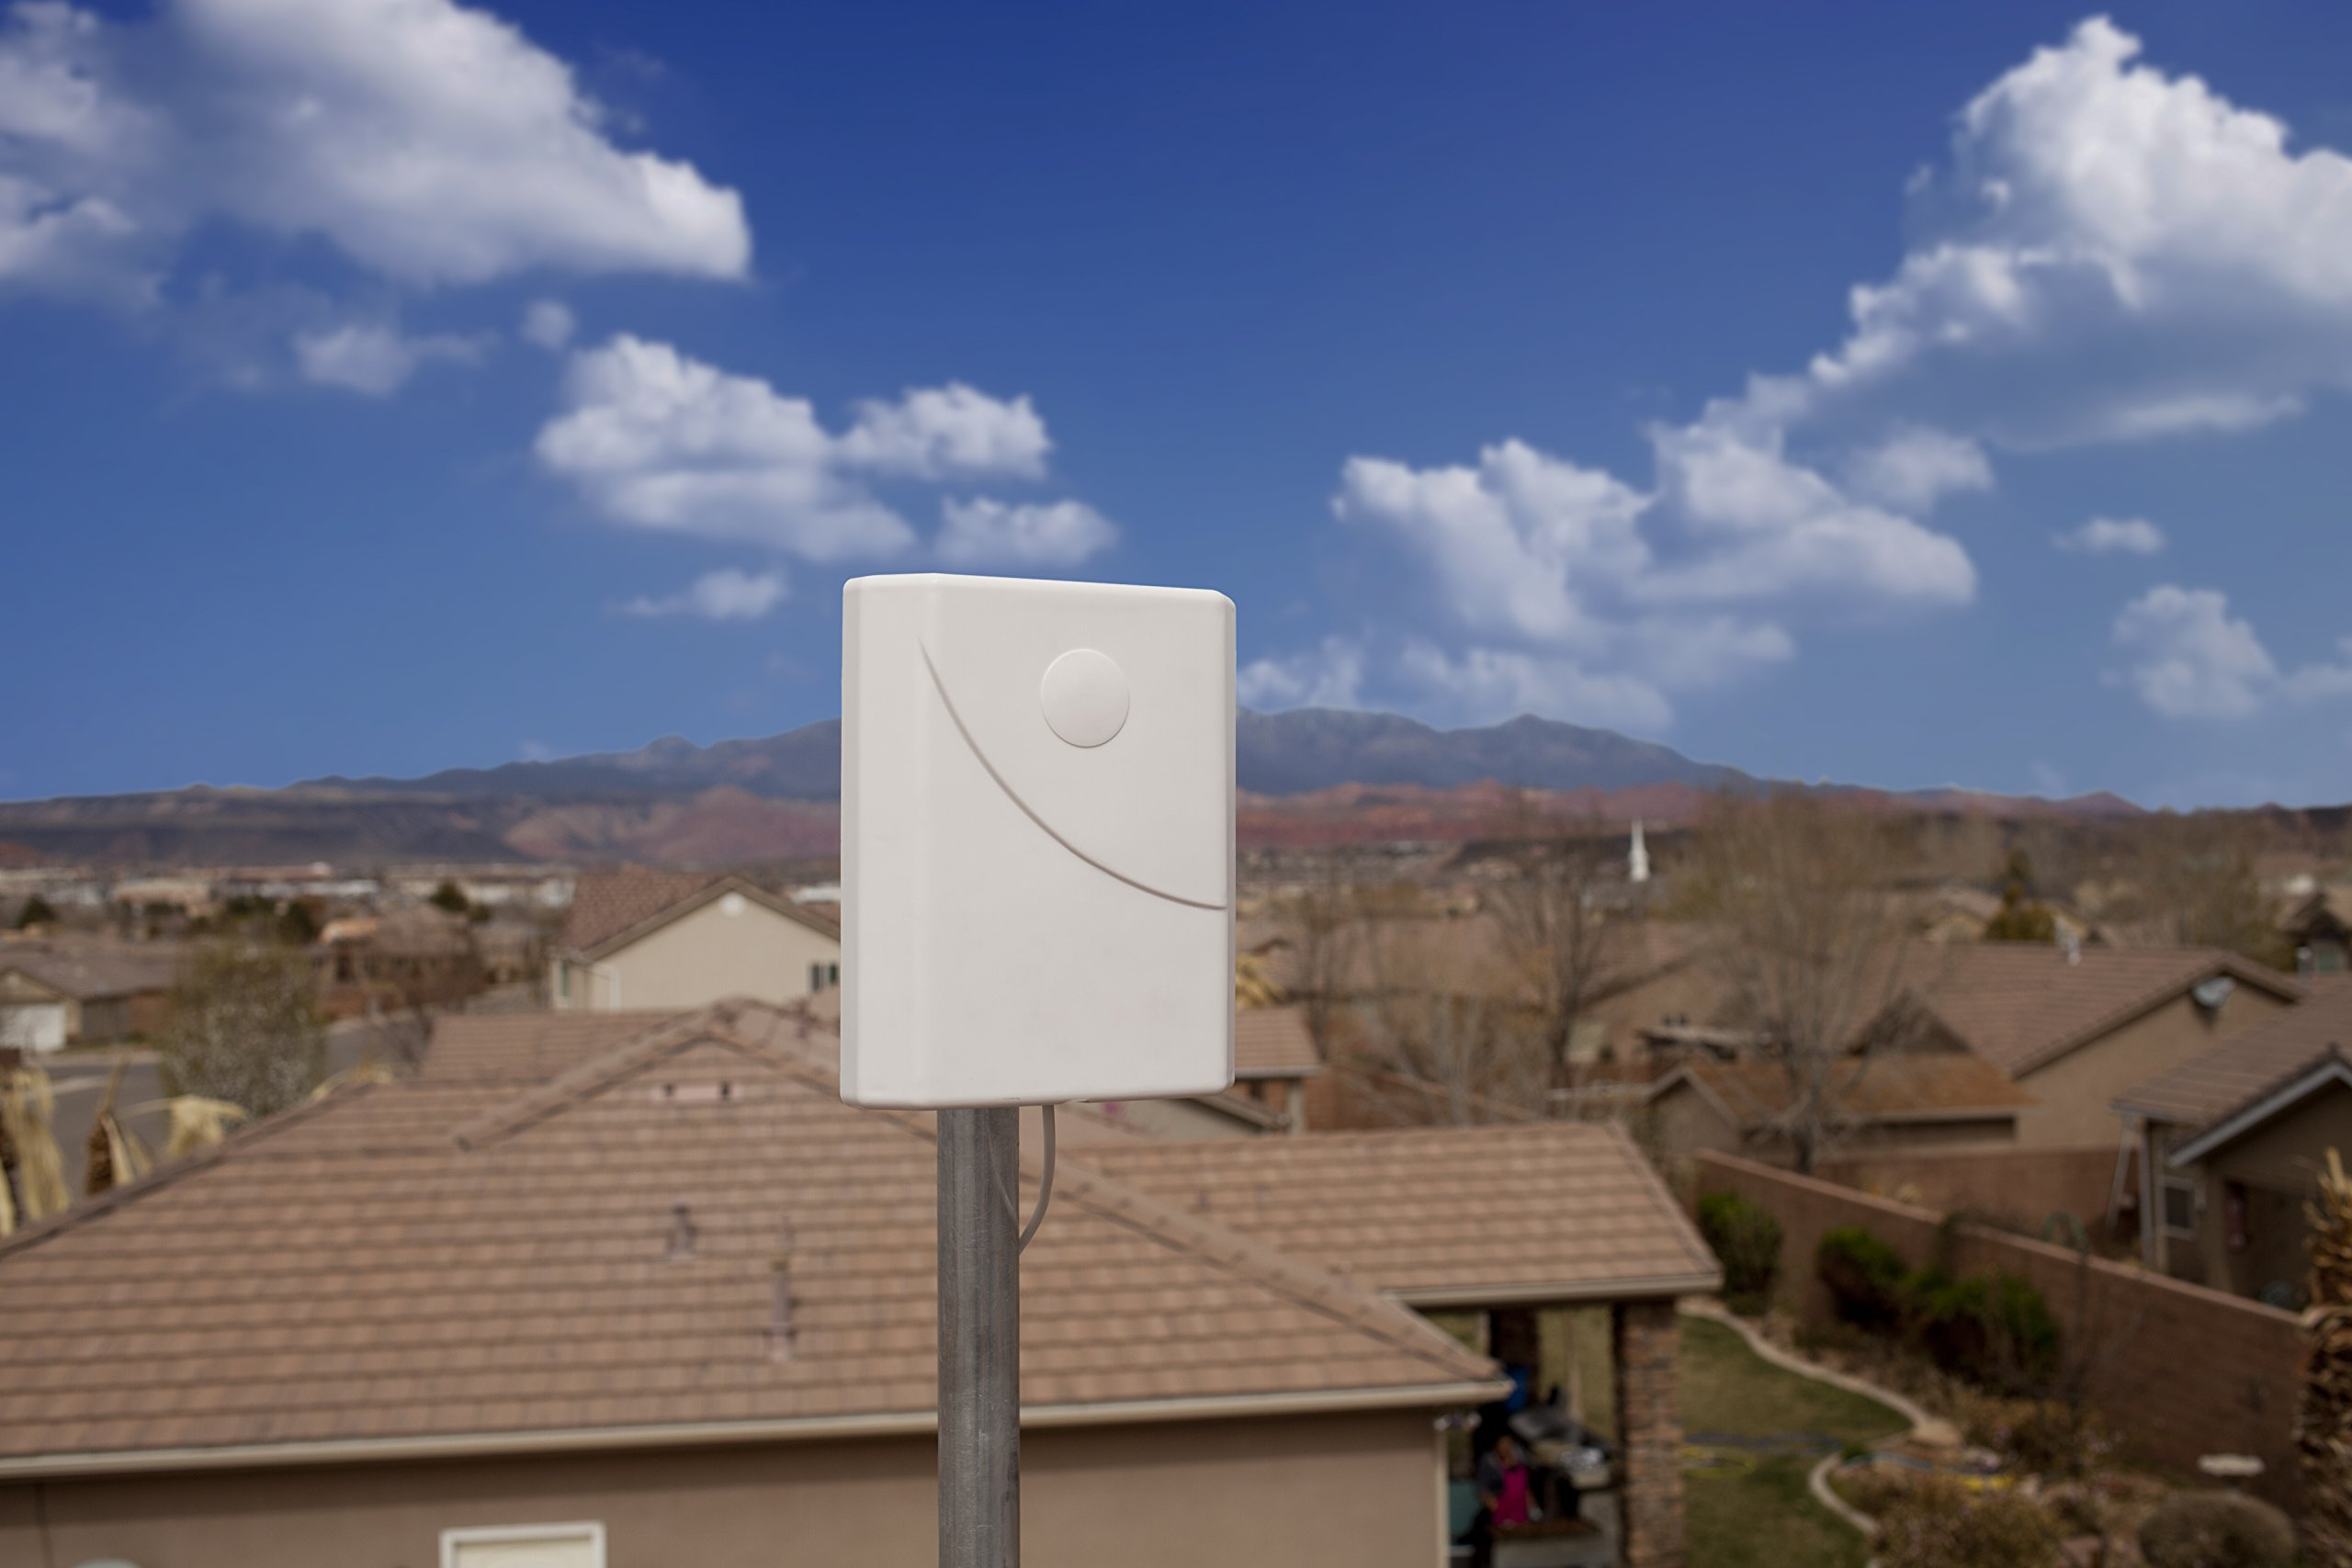 weBoost Home 3G Cell Phone Signal Booster Kit for Home and Office – Enhance Your Signal up to 32x. Can Cover up to 1500 sq ft or Small Home. For Multiple Devices and Users. by weBoost (Image #3)